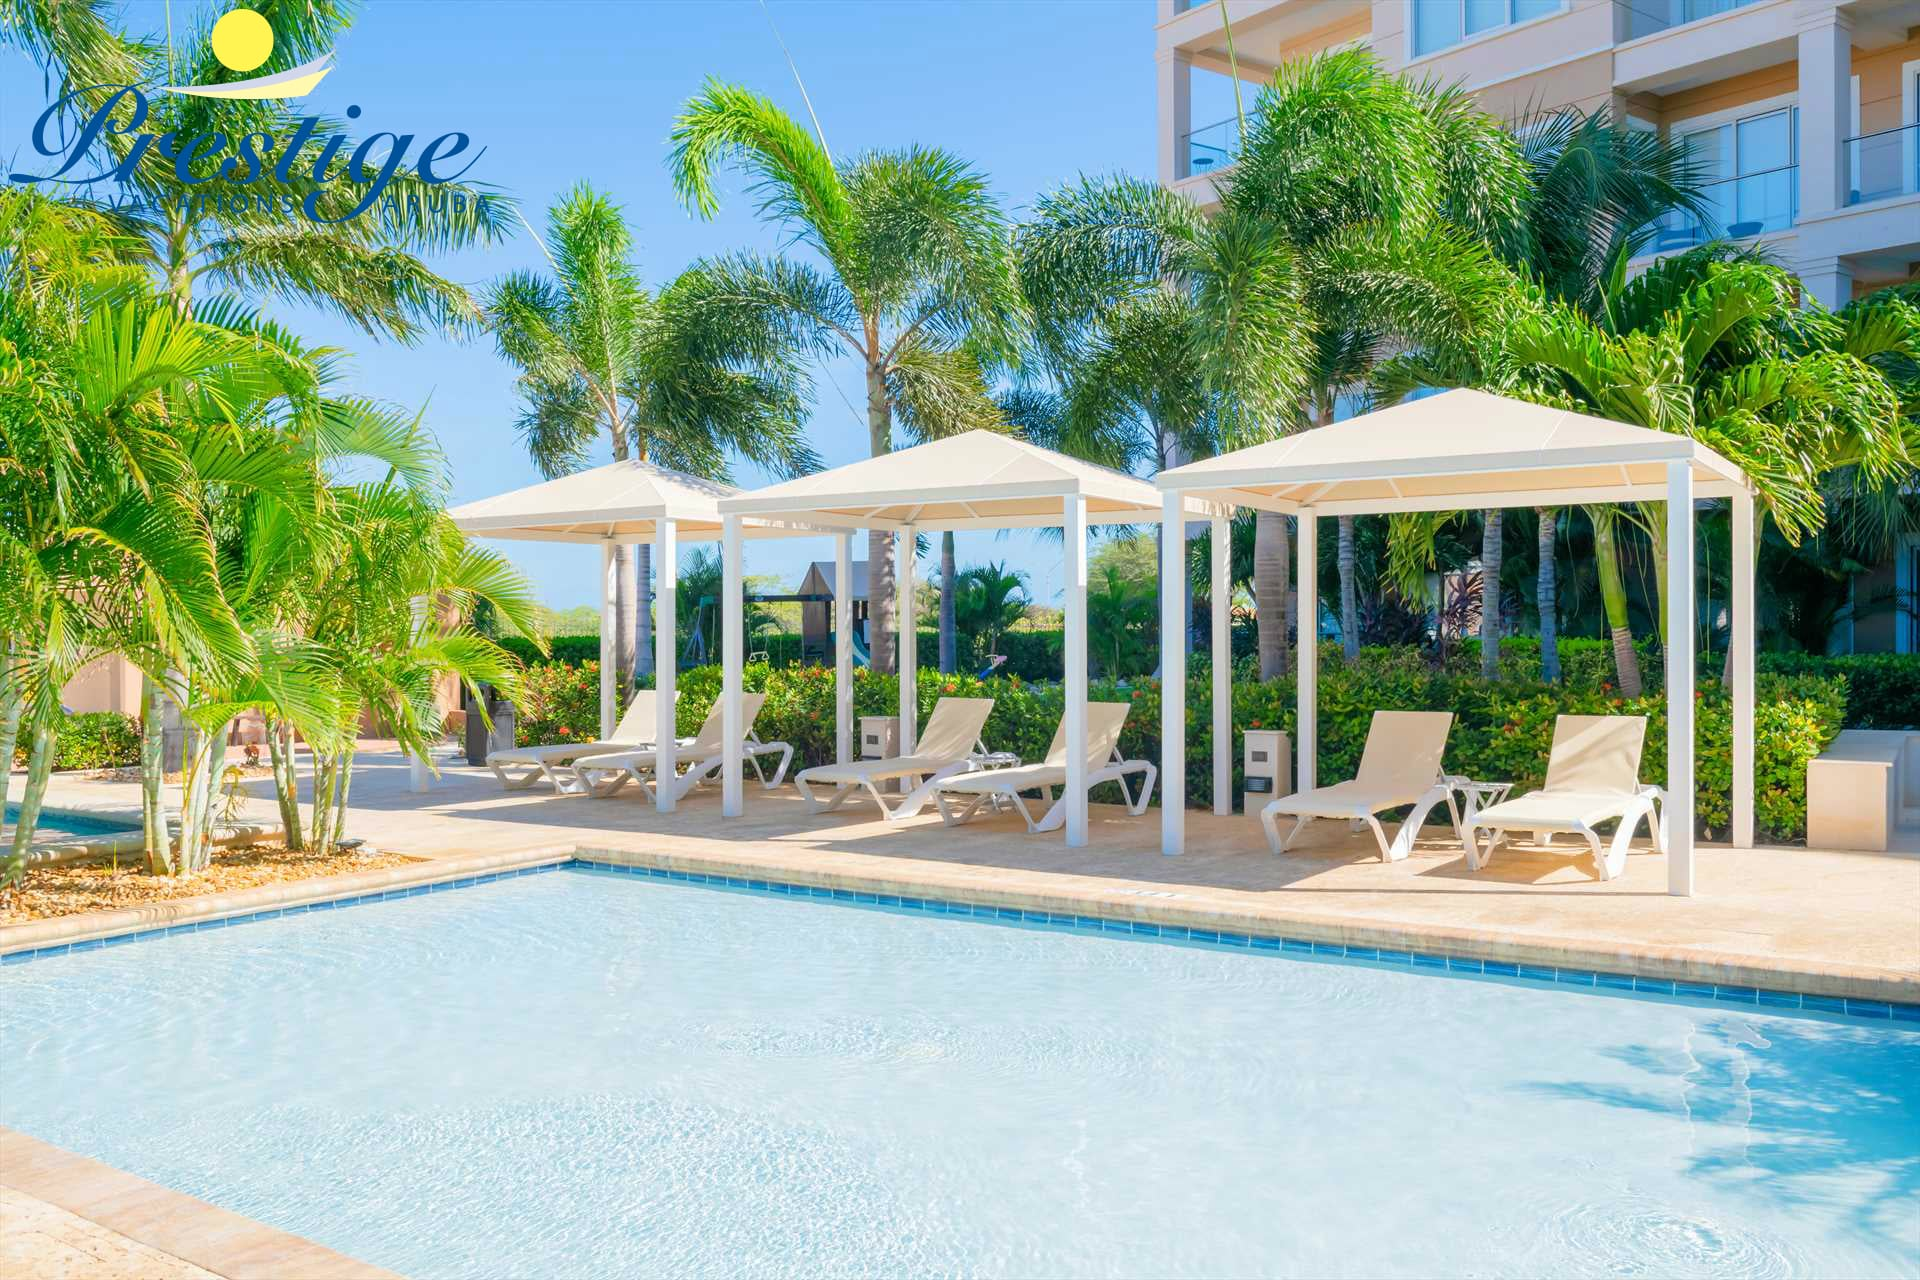 Relax and enjoy the Aruba weather at the LeVent Beach Resort Aruba